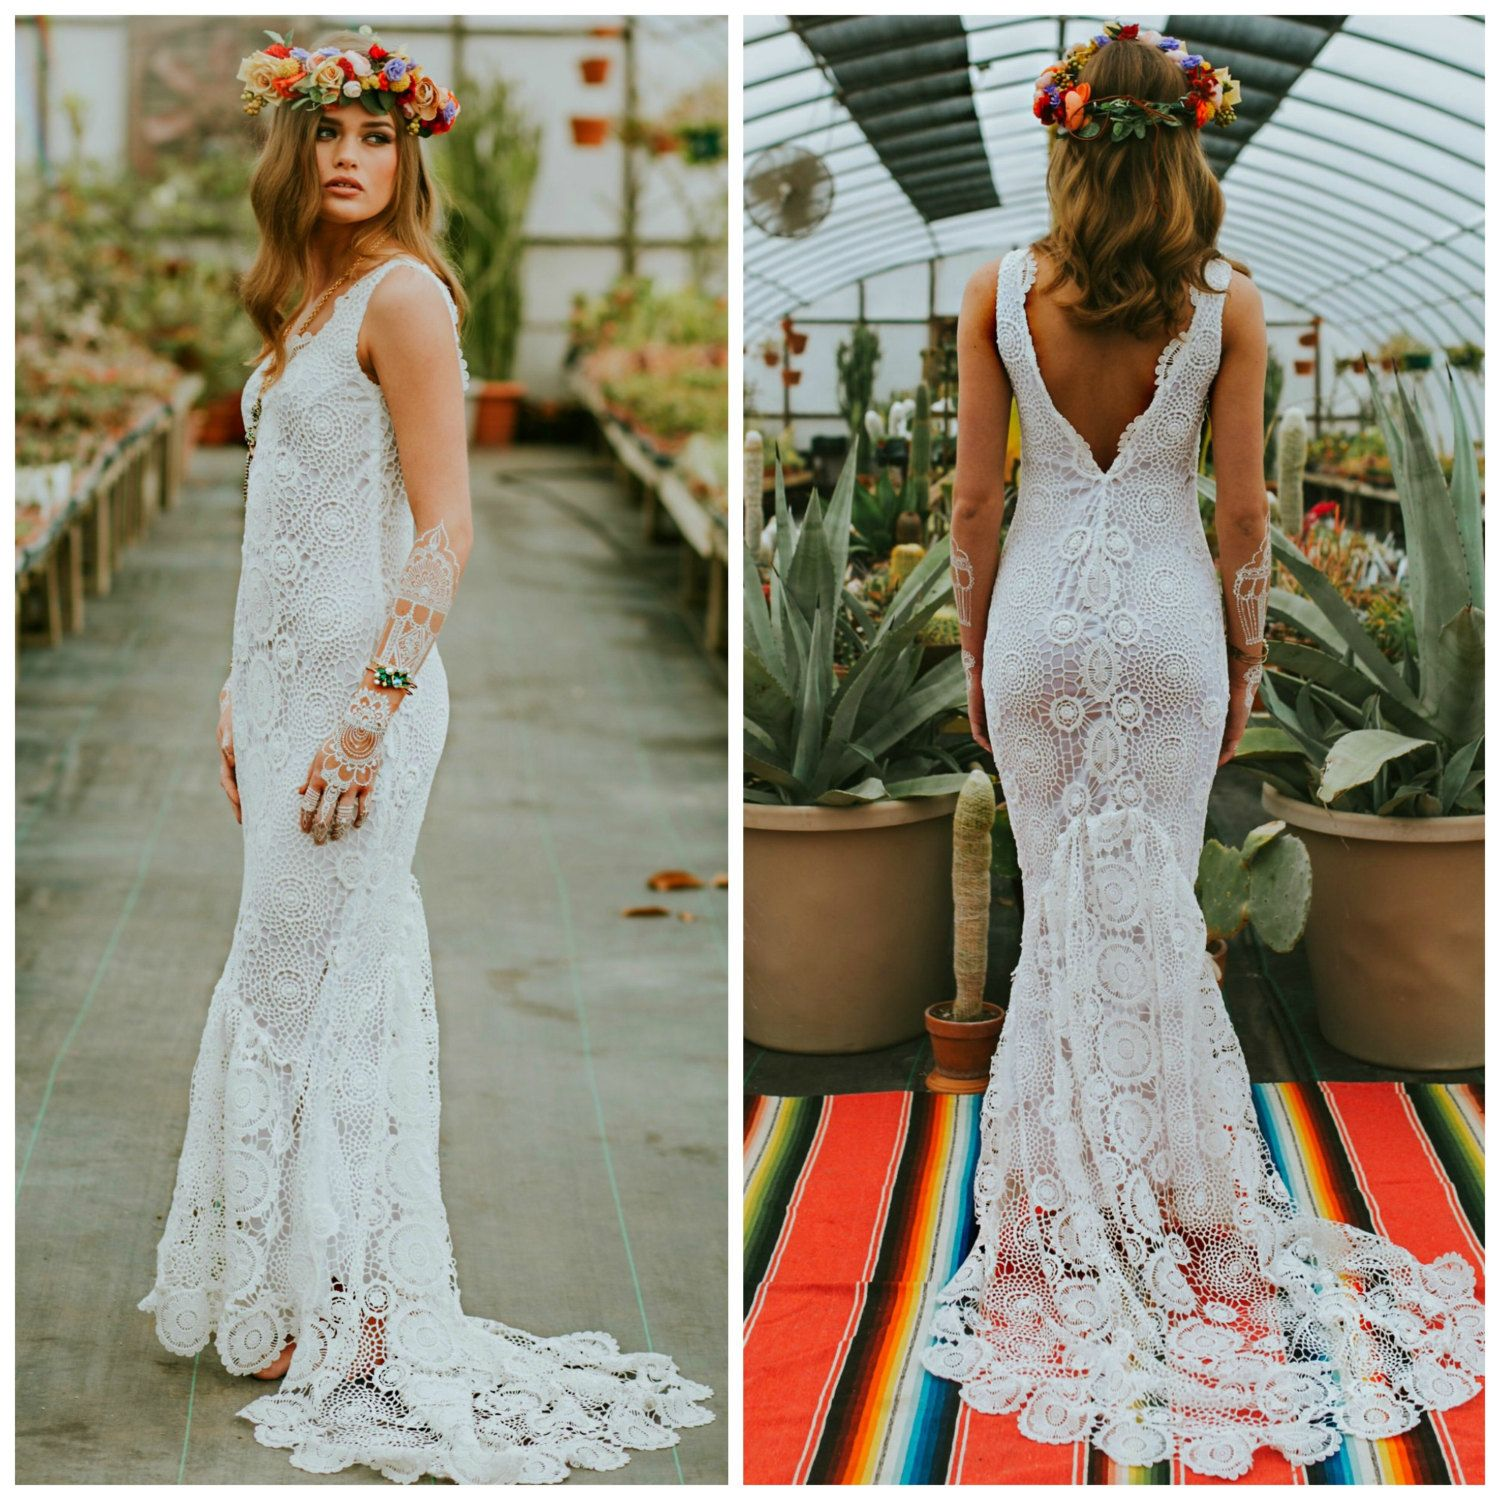 Wedding Dress Prices | Crochet wedding dresses, Crochet lace and Crochet